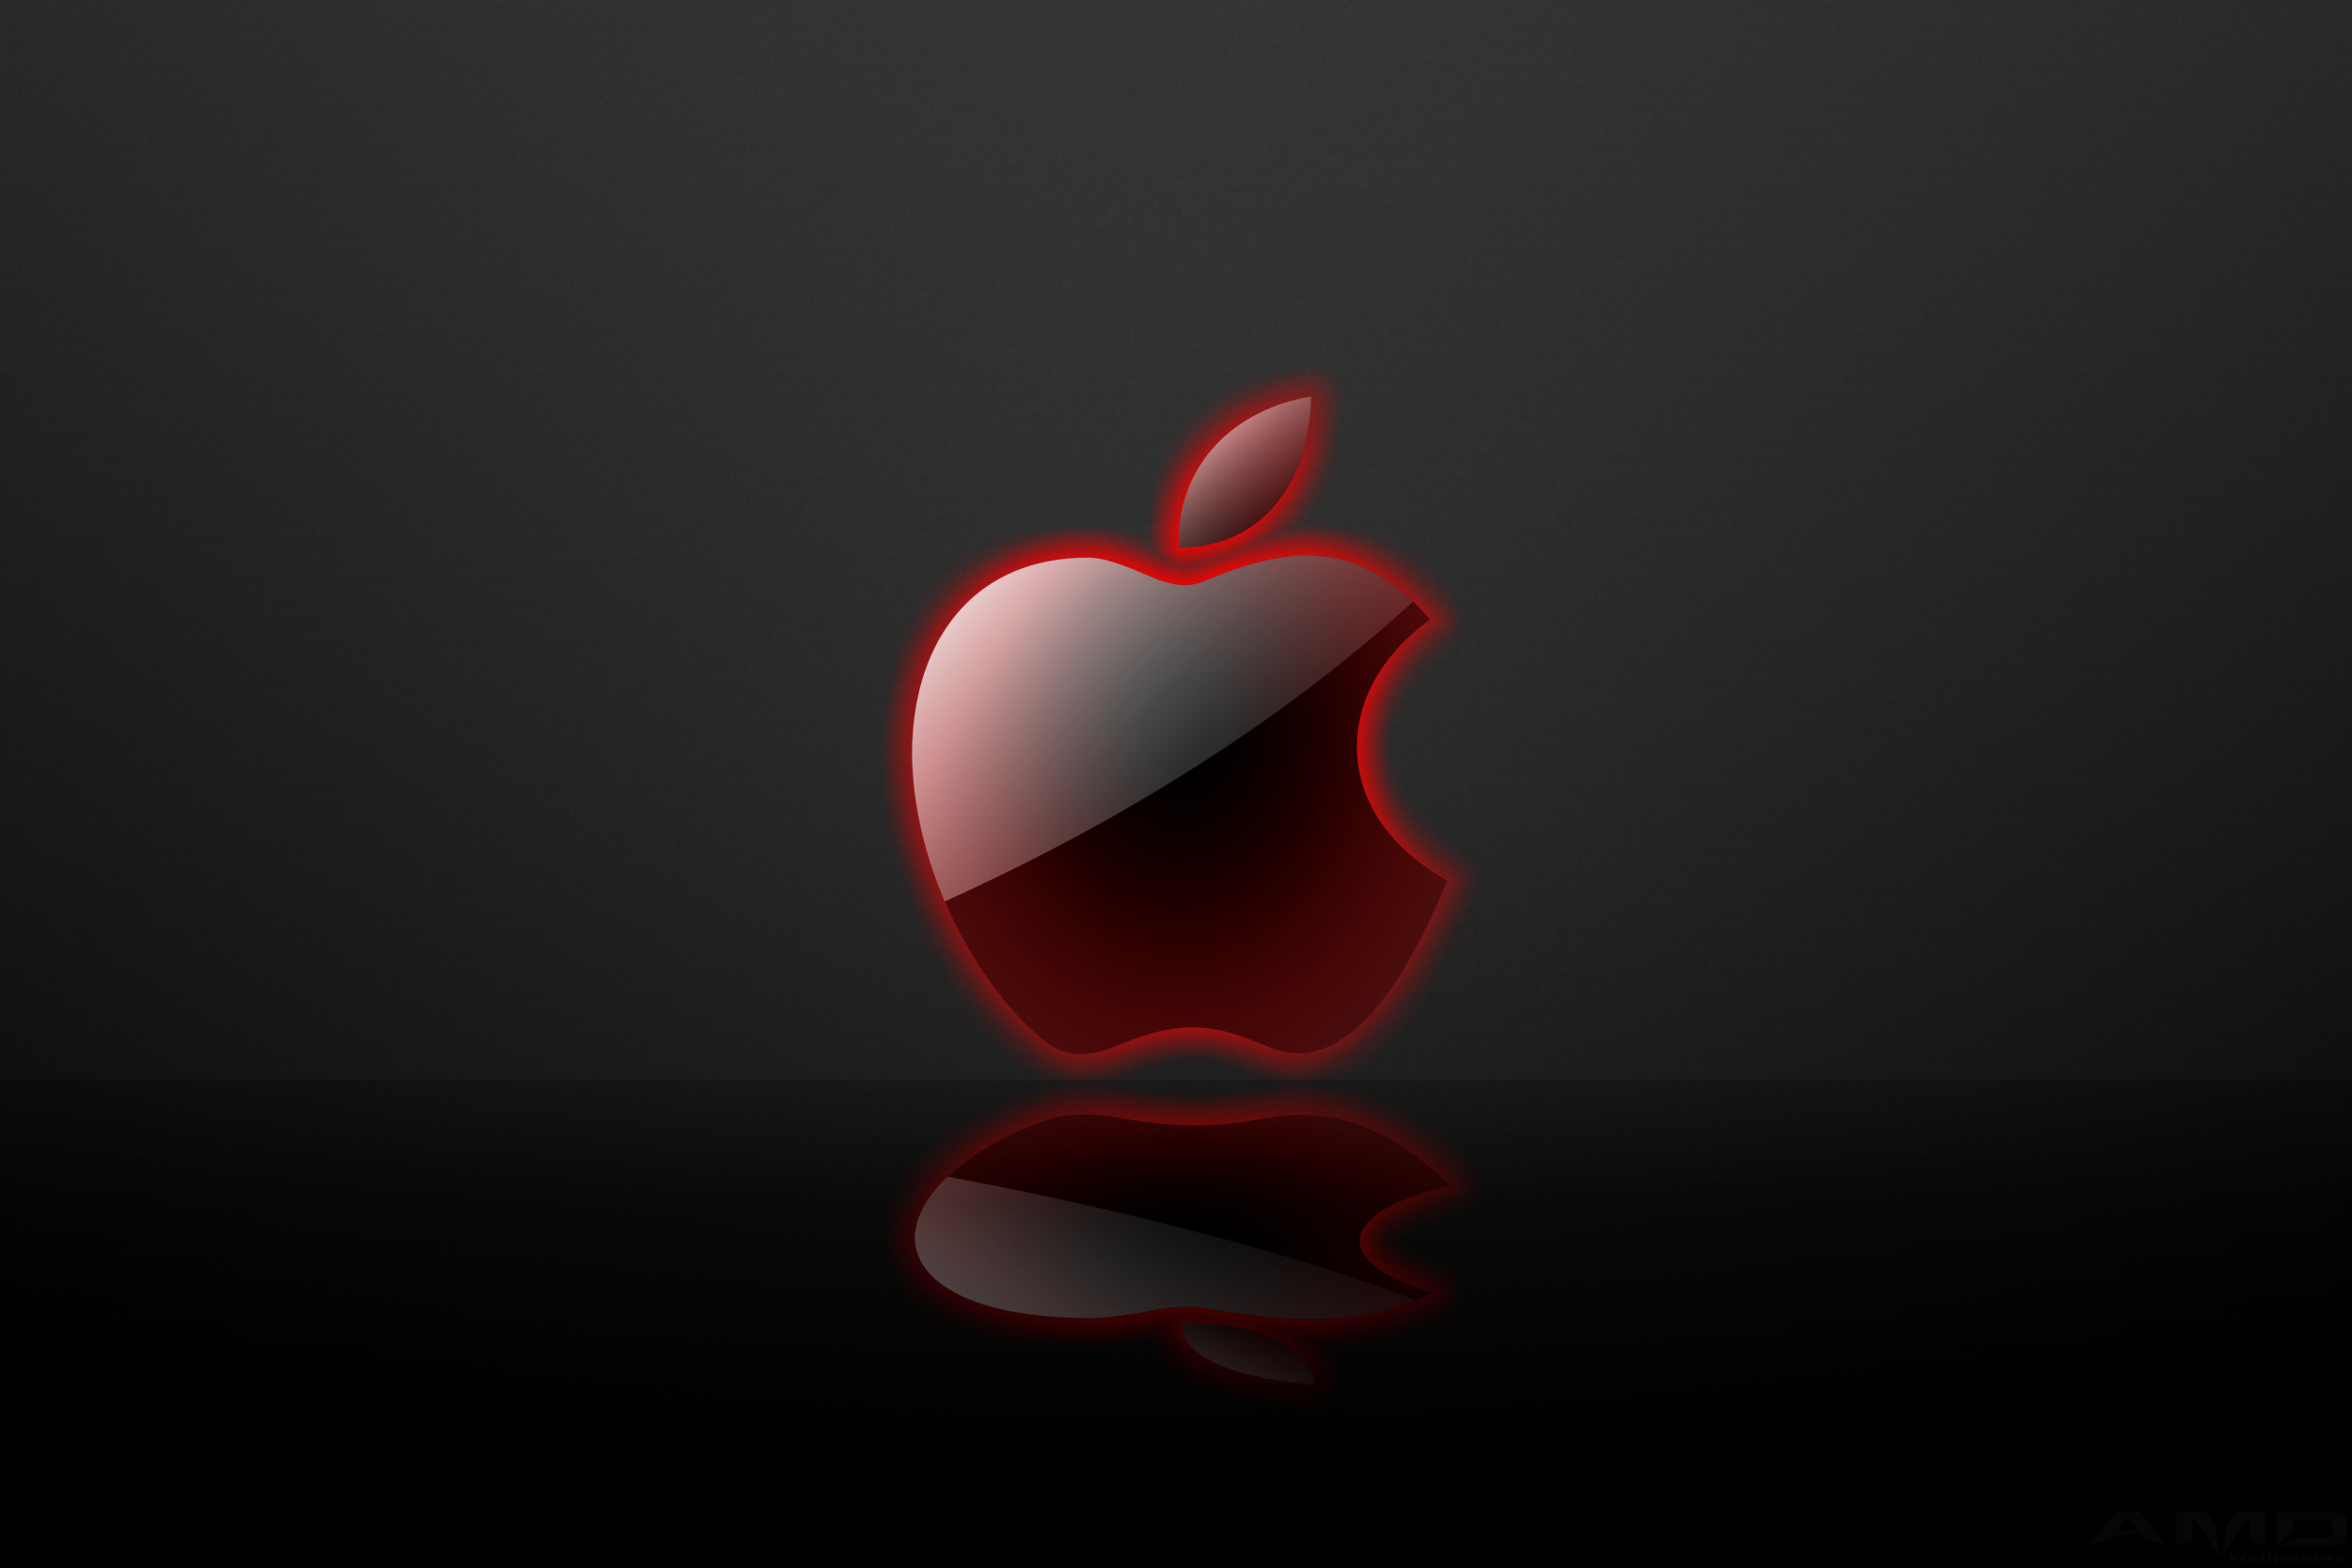 Free Download Red Apple Logo Wallpaper Hd 2500x1667 For